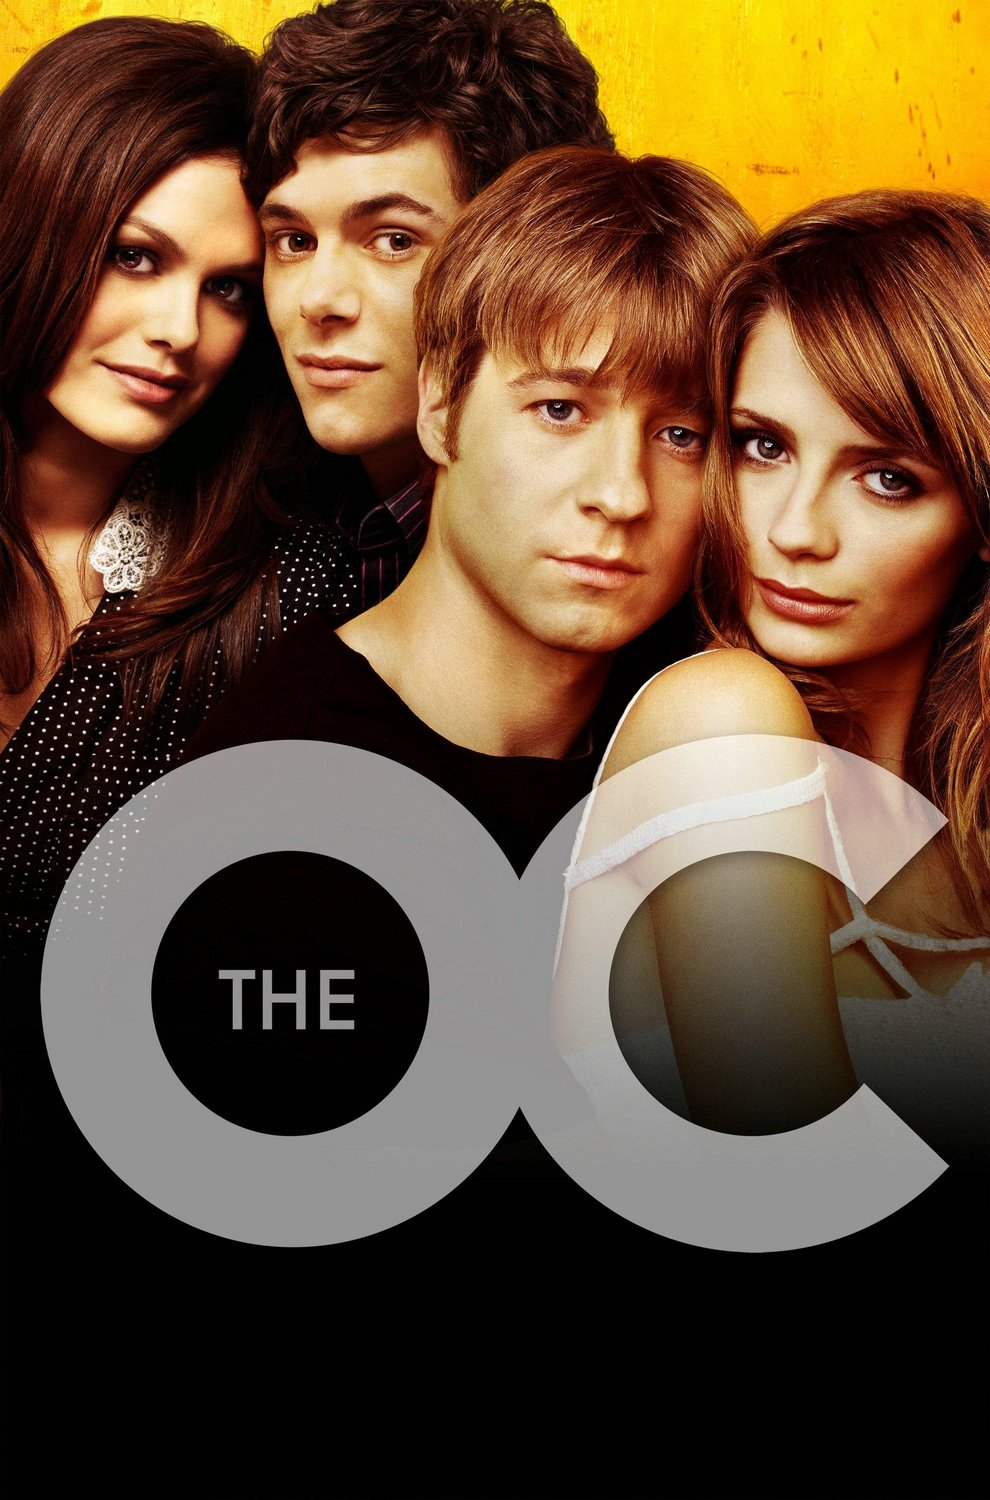 The O C  (TV Series 2003–2007) - IMDb